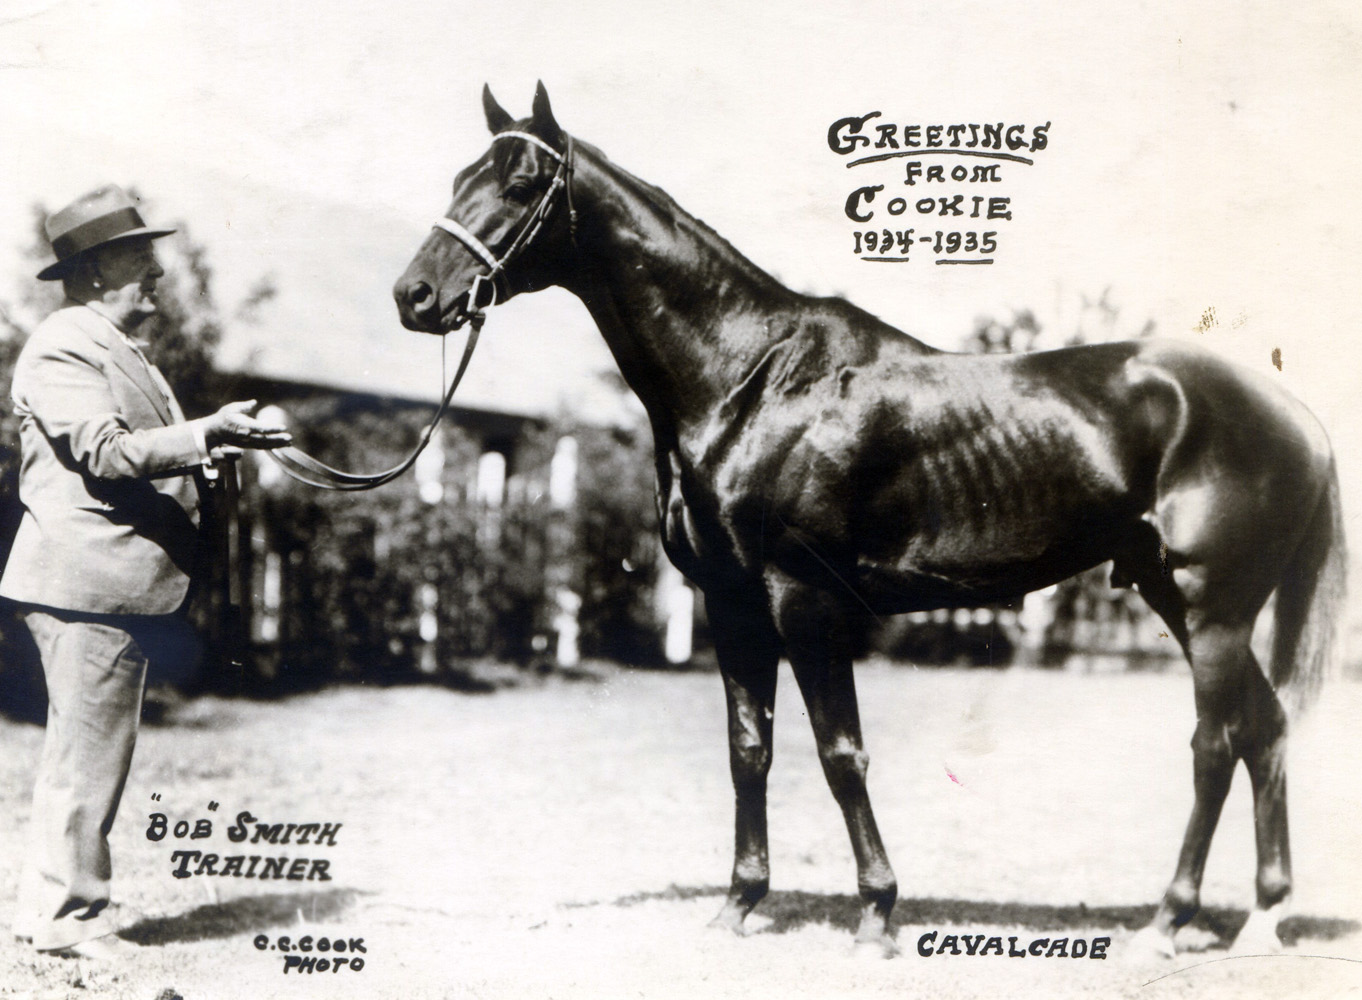 "Cavalcade and trainer Robert Smith featured in the 1934 ""Christmas Cookie"" greeting card produced by photographer C. C. Cook (C. C. Cook/Museum Collection)"